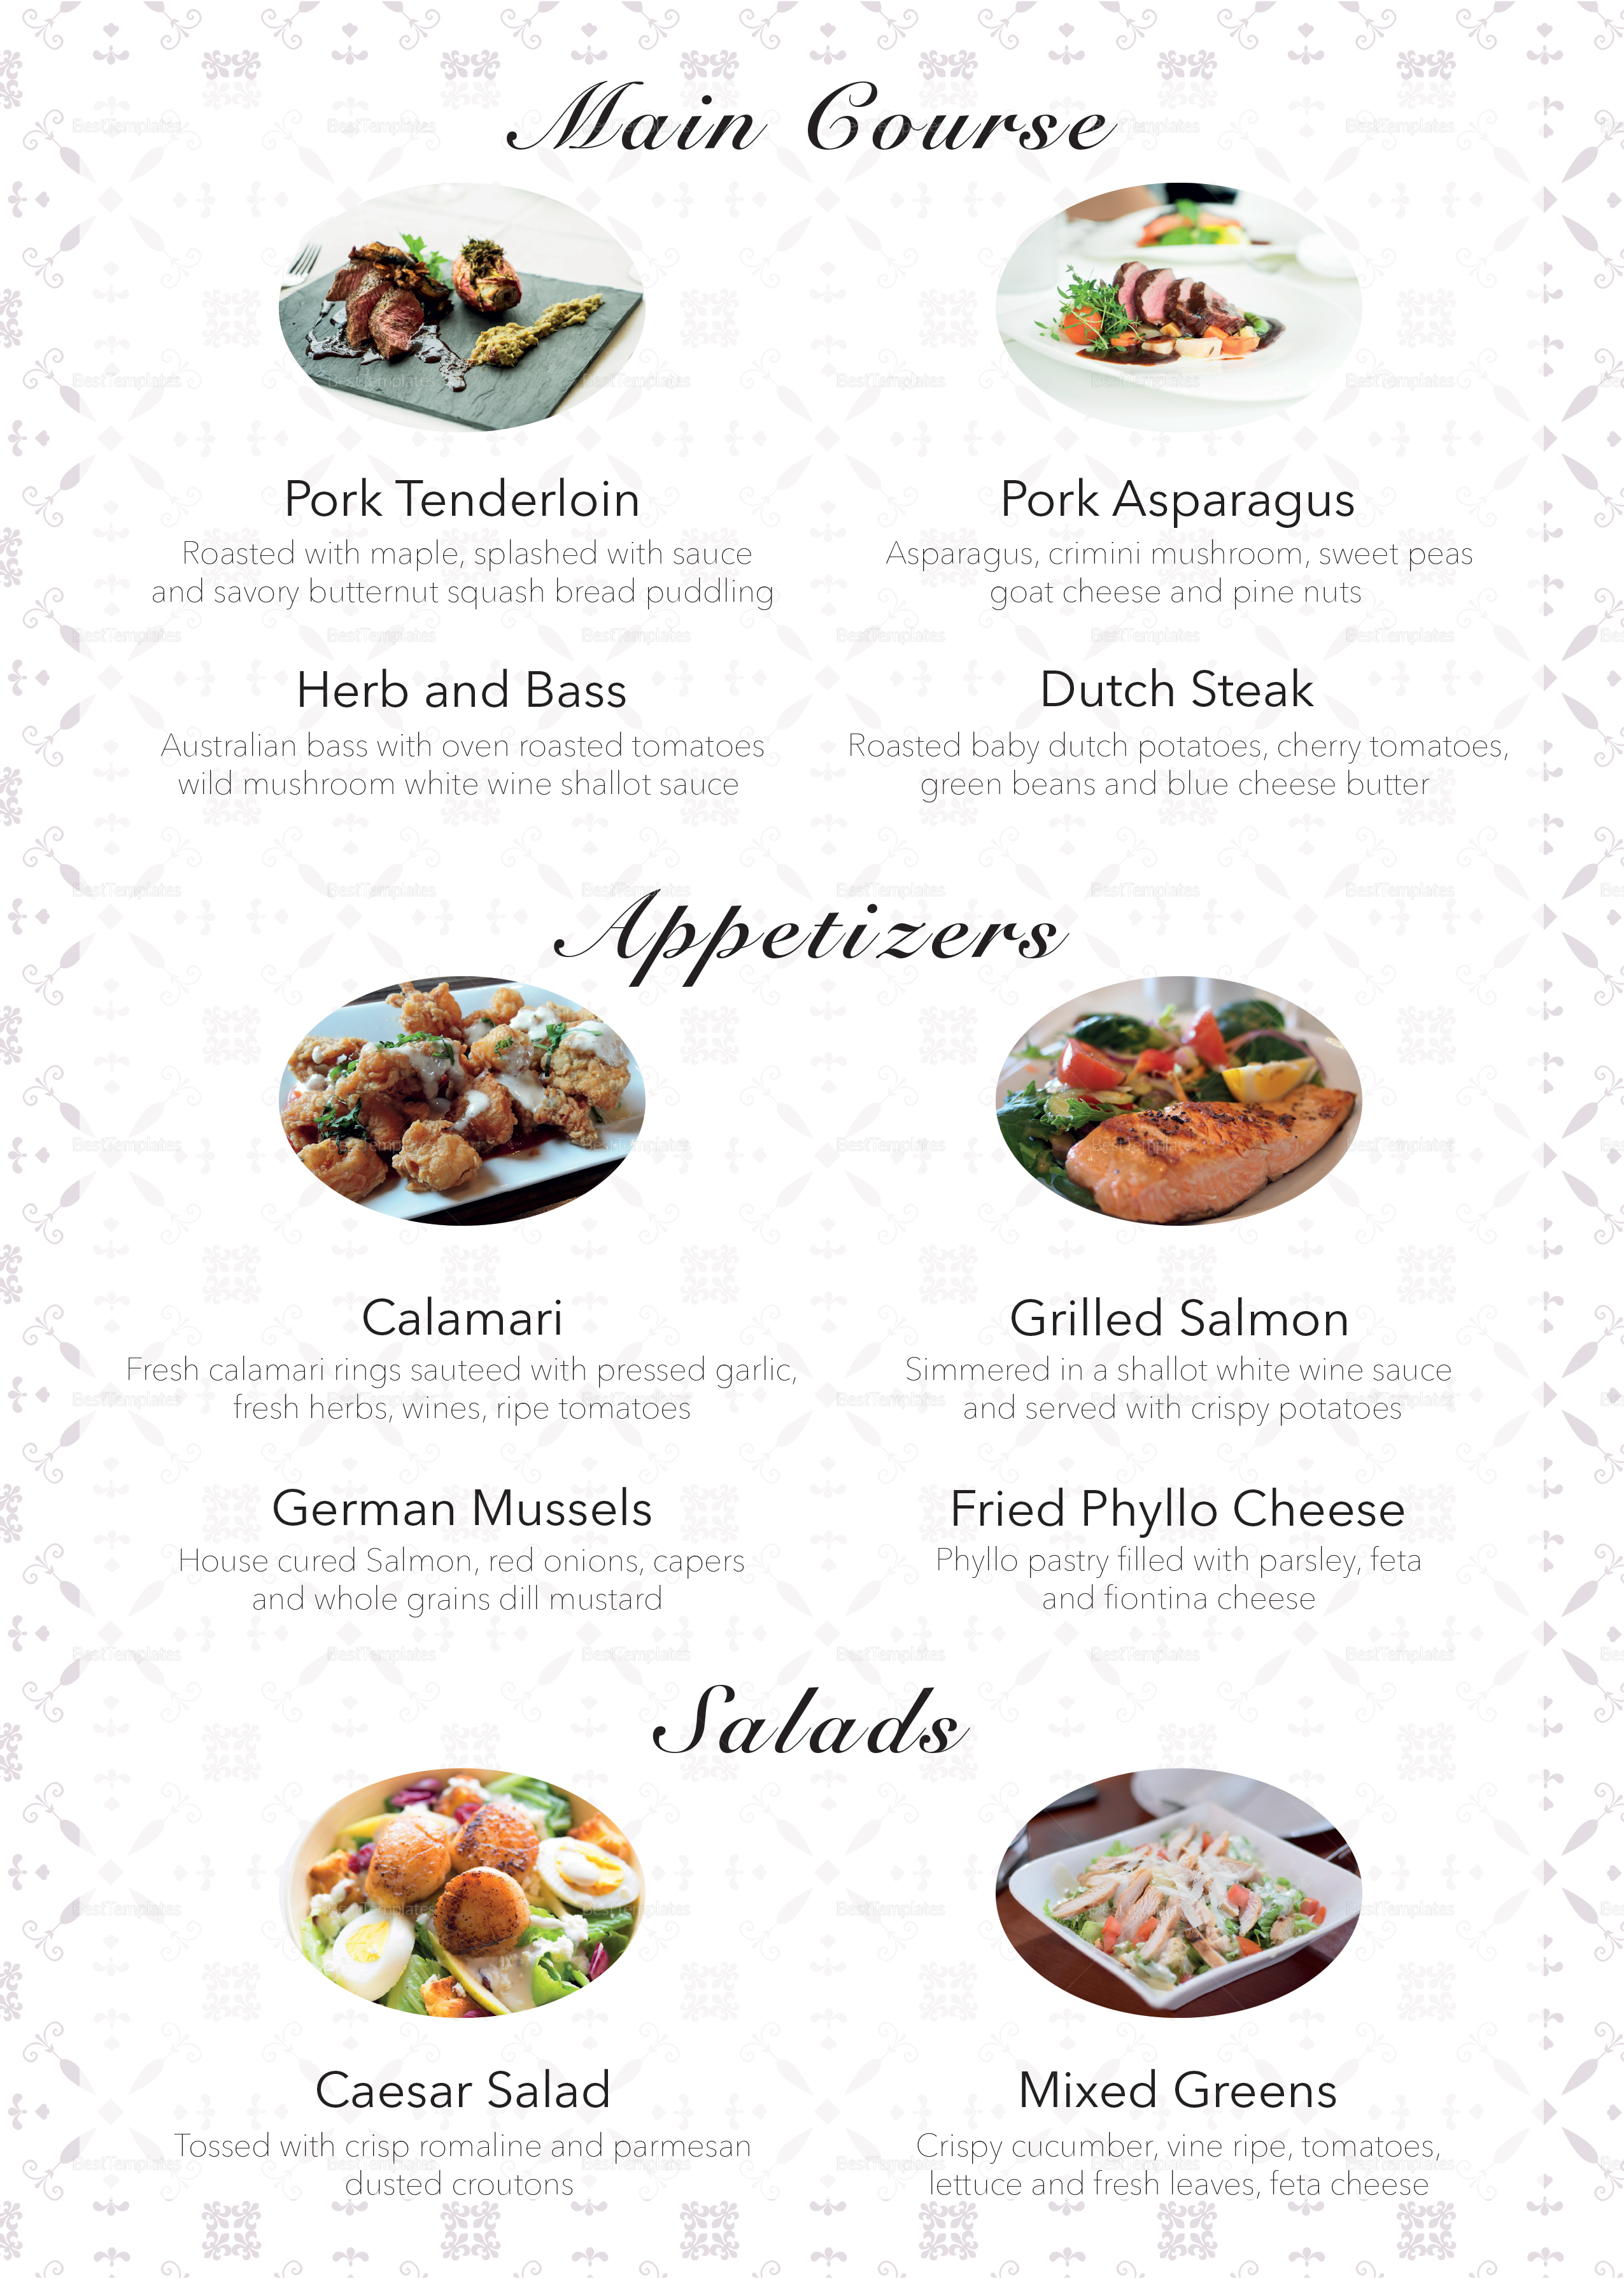 how to create a restaurant menu in indesign